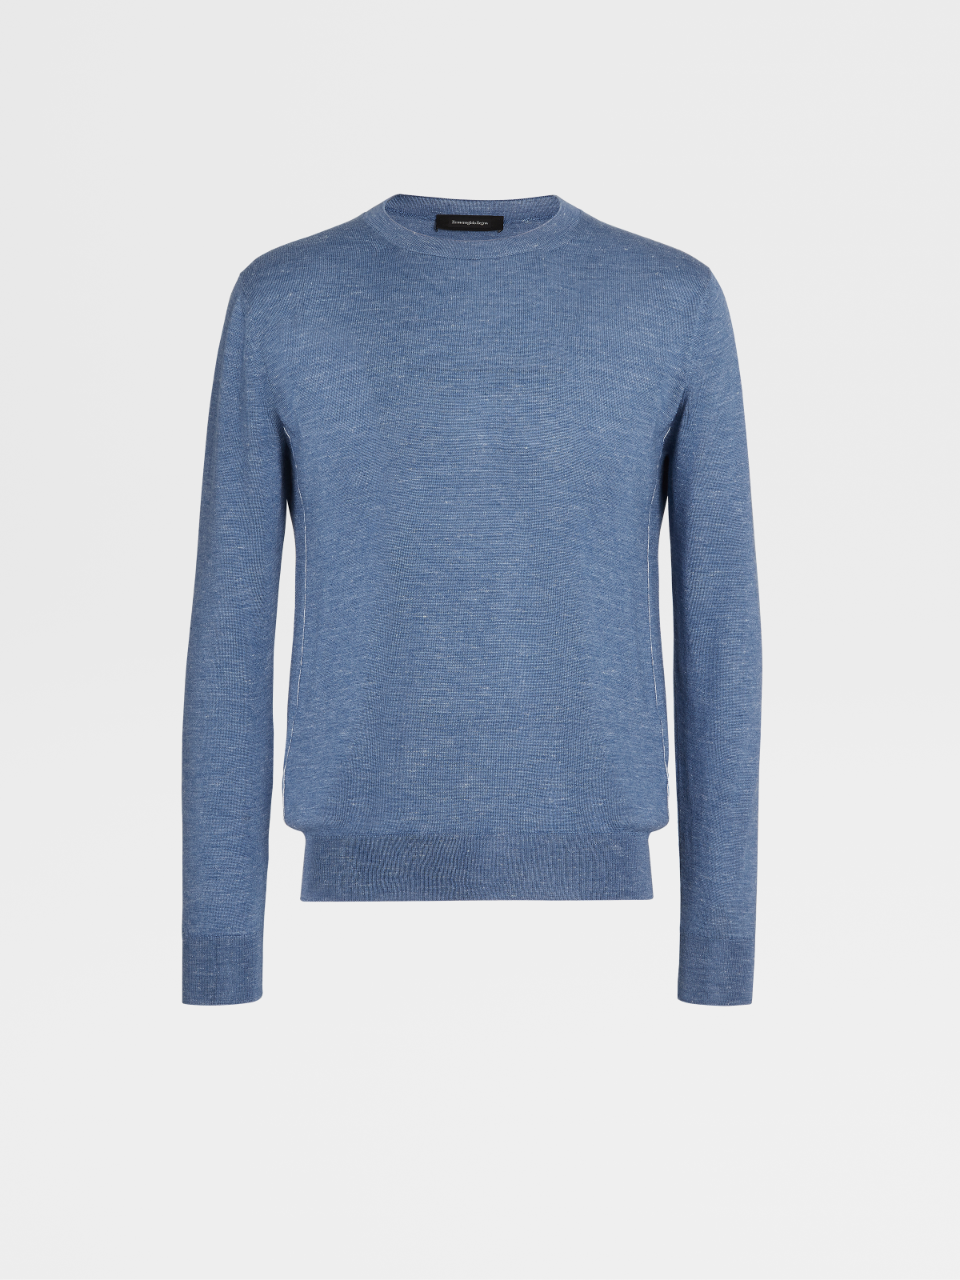 Silk Cashmere And Linen Knit Crewneck